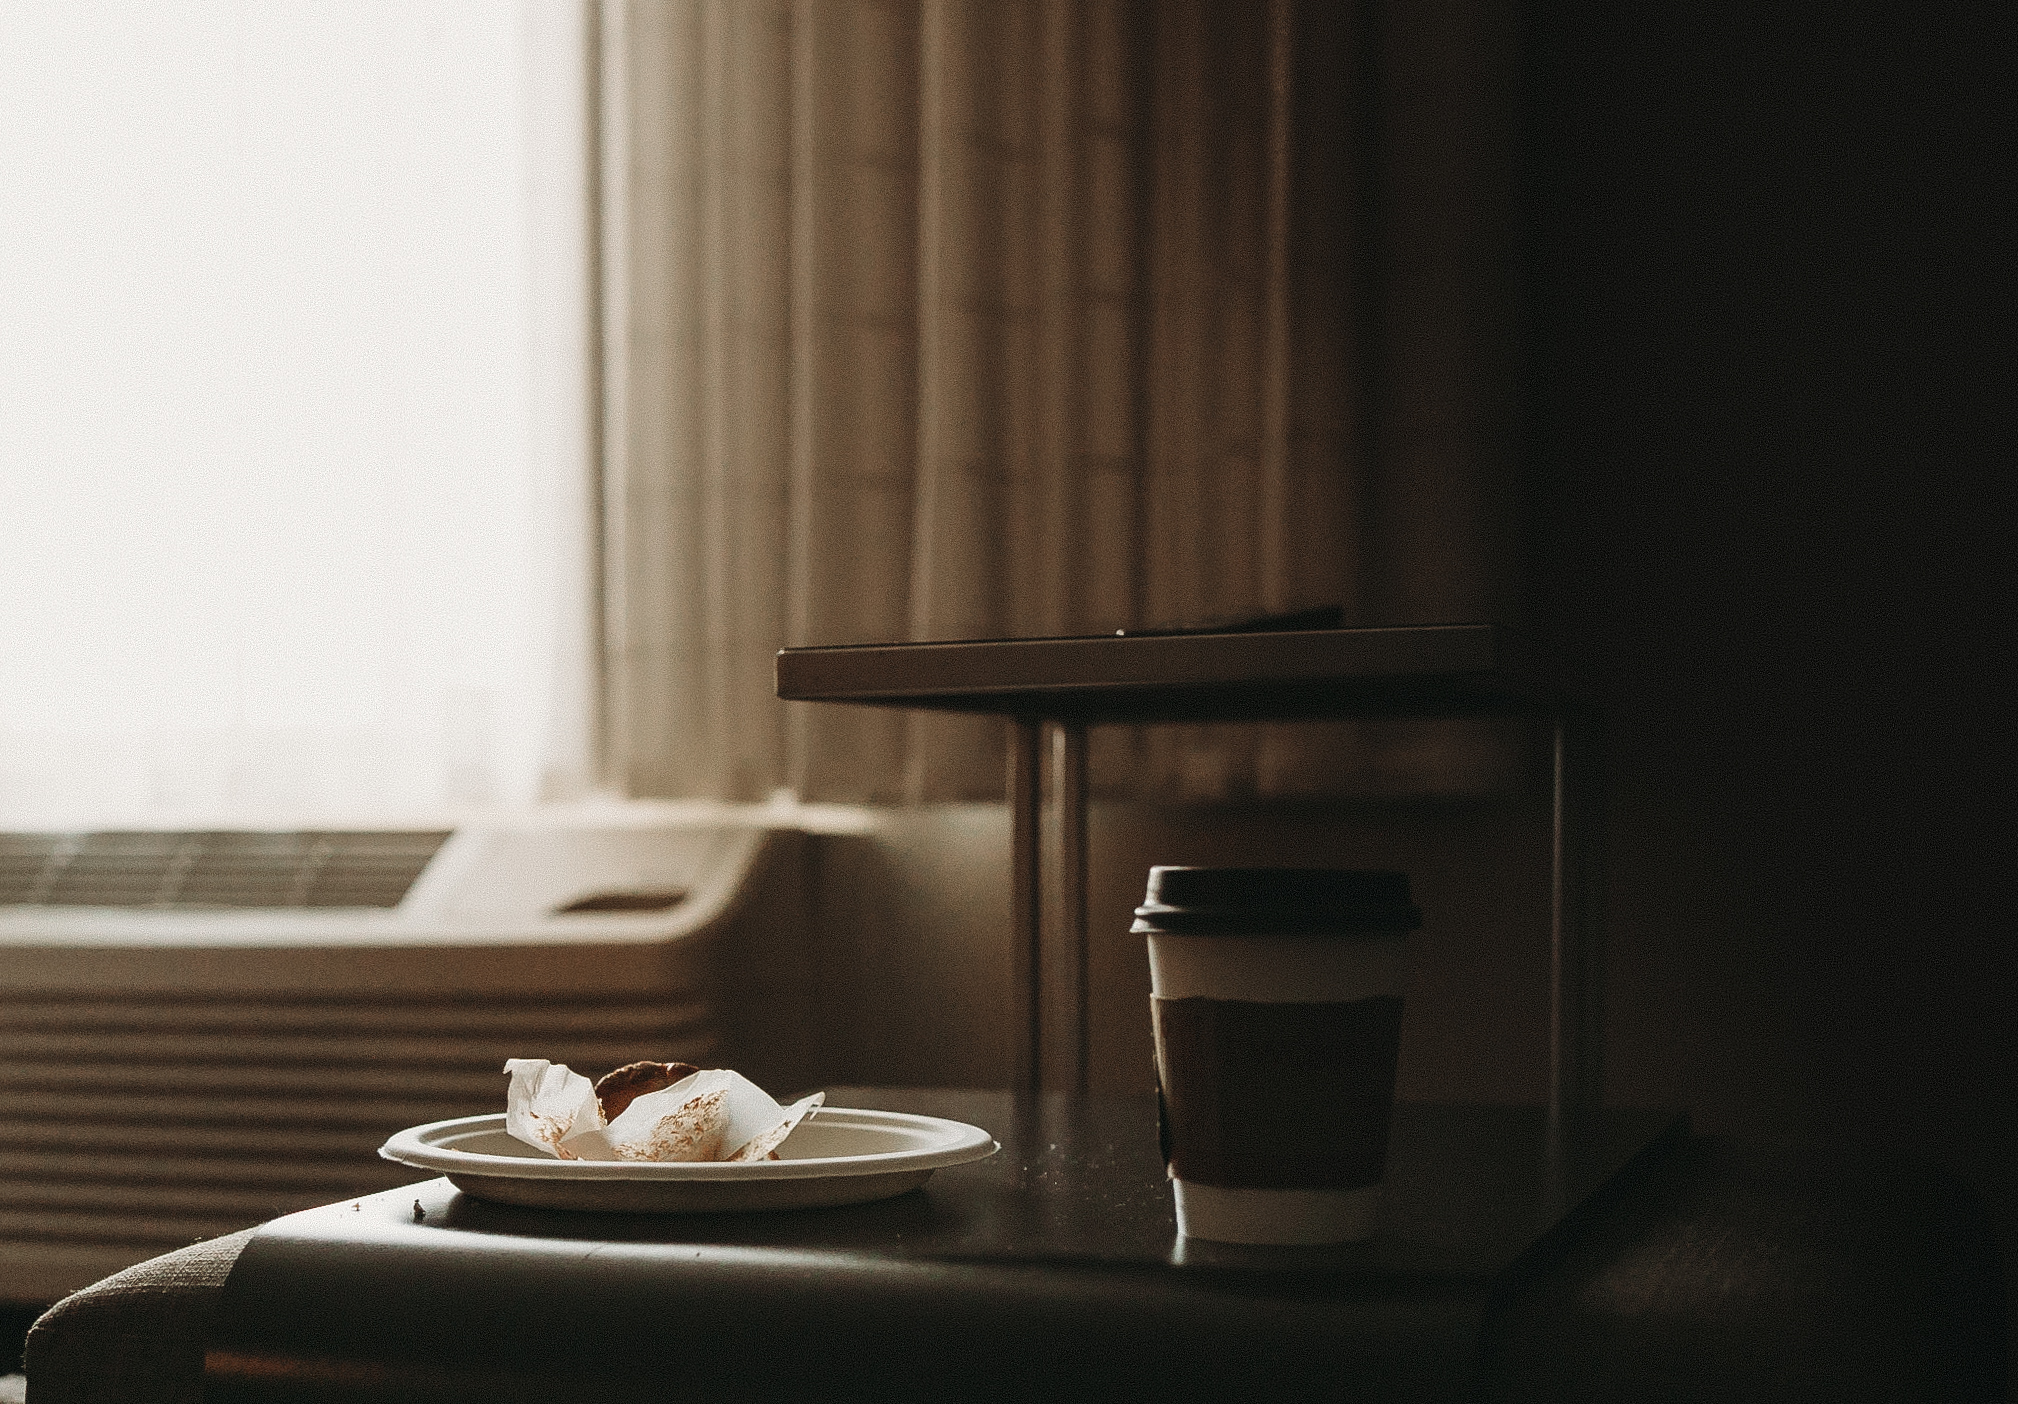 pastry wrapper and cup of coffee by window in low light by jyo bhamidipati